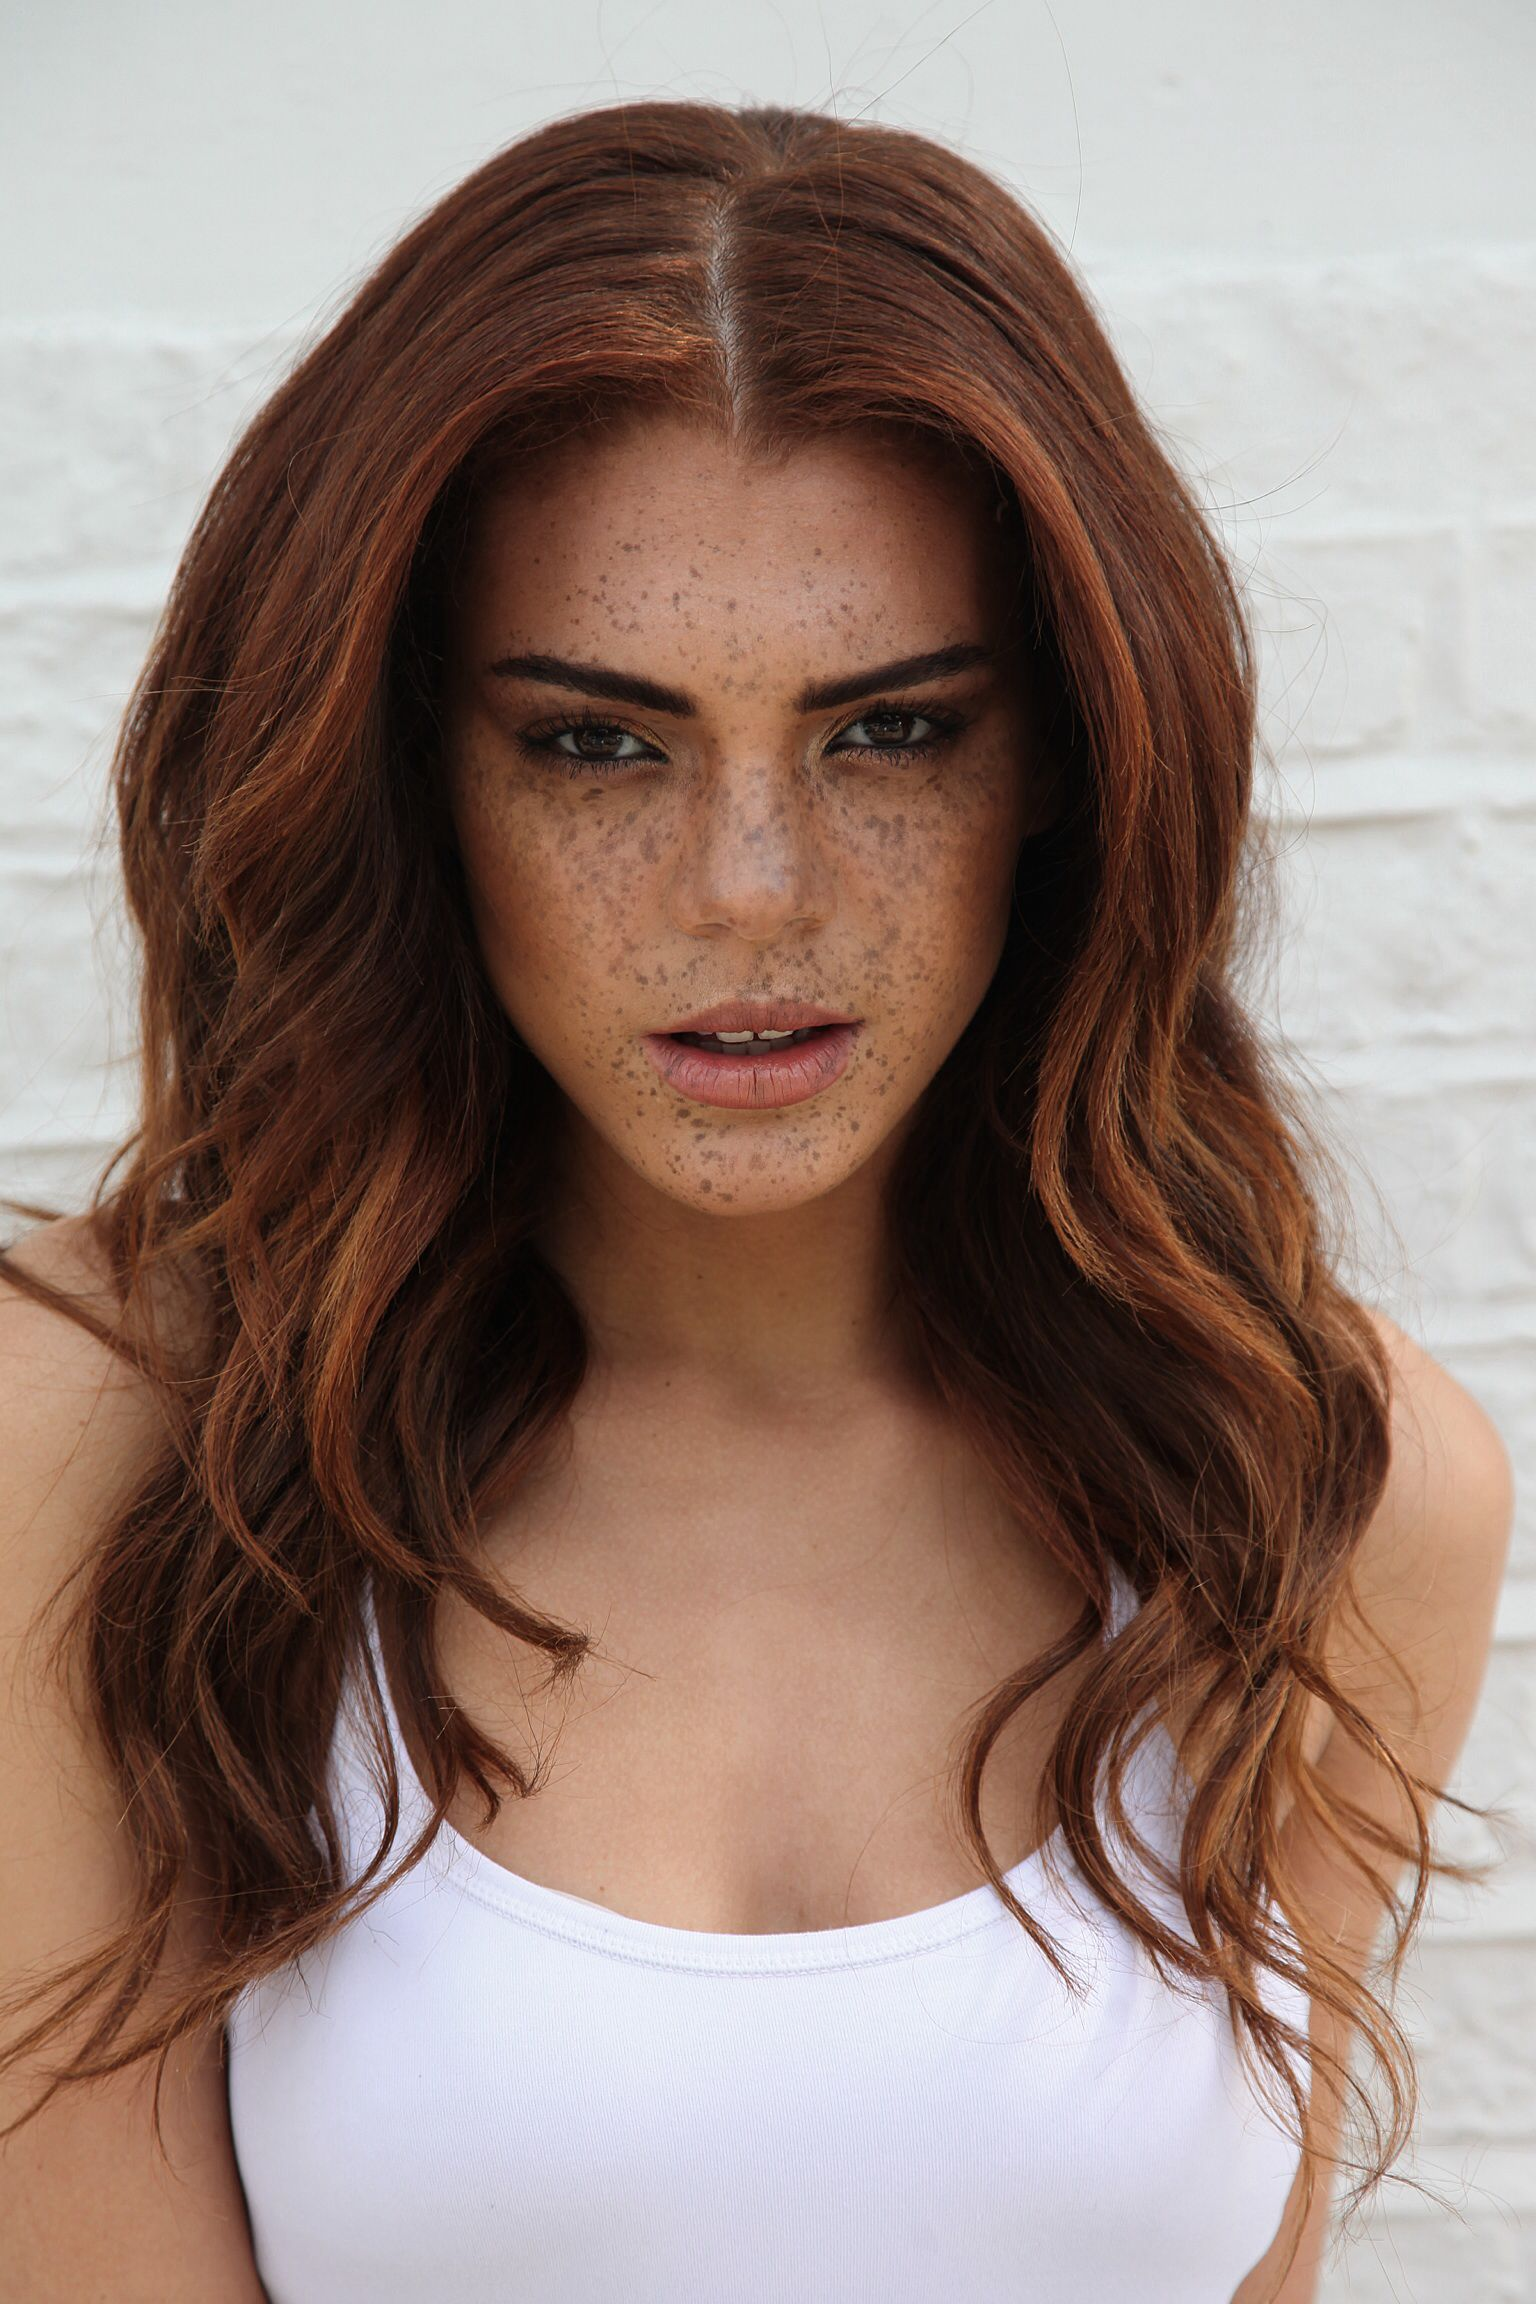 Interesting Facial Comboburnbrown Hair And Freckles With Dark